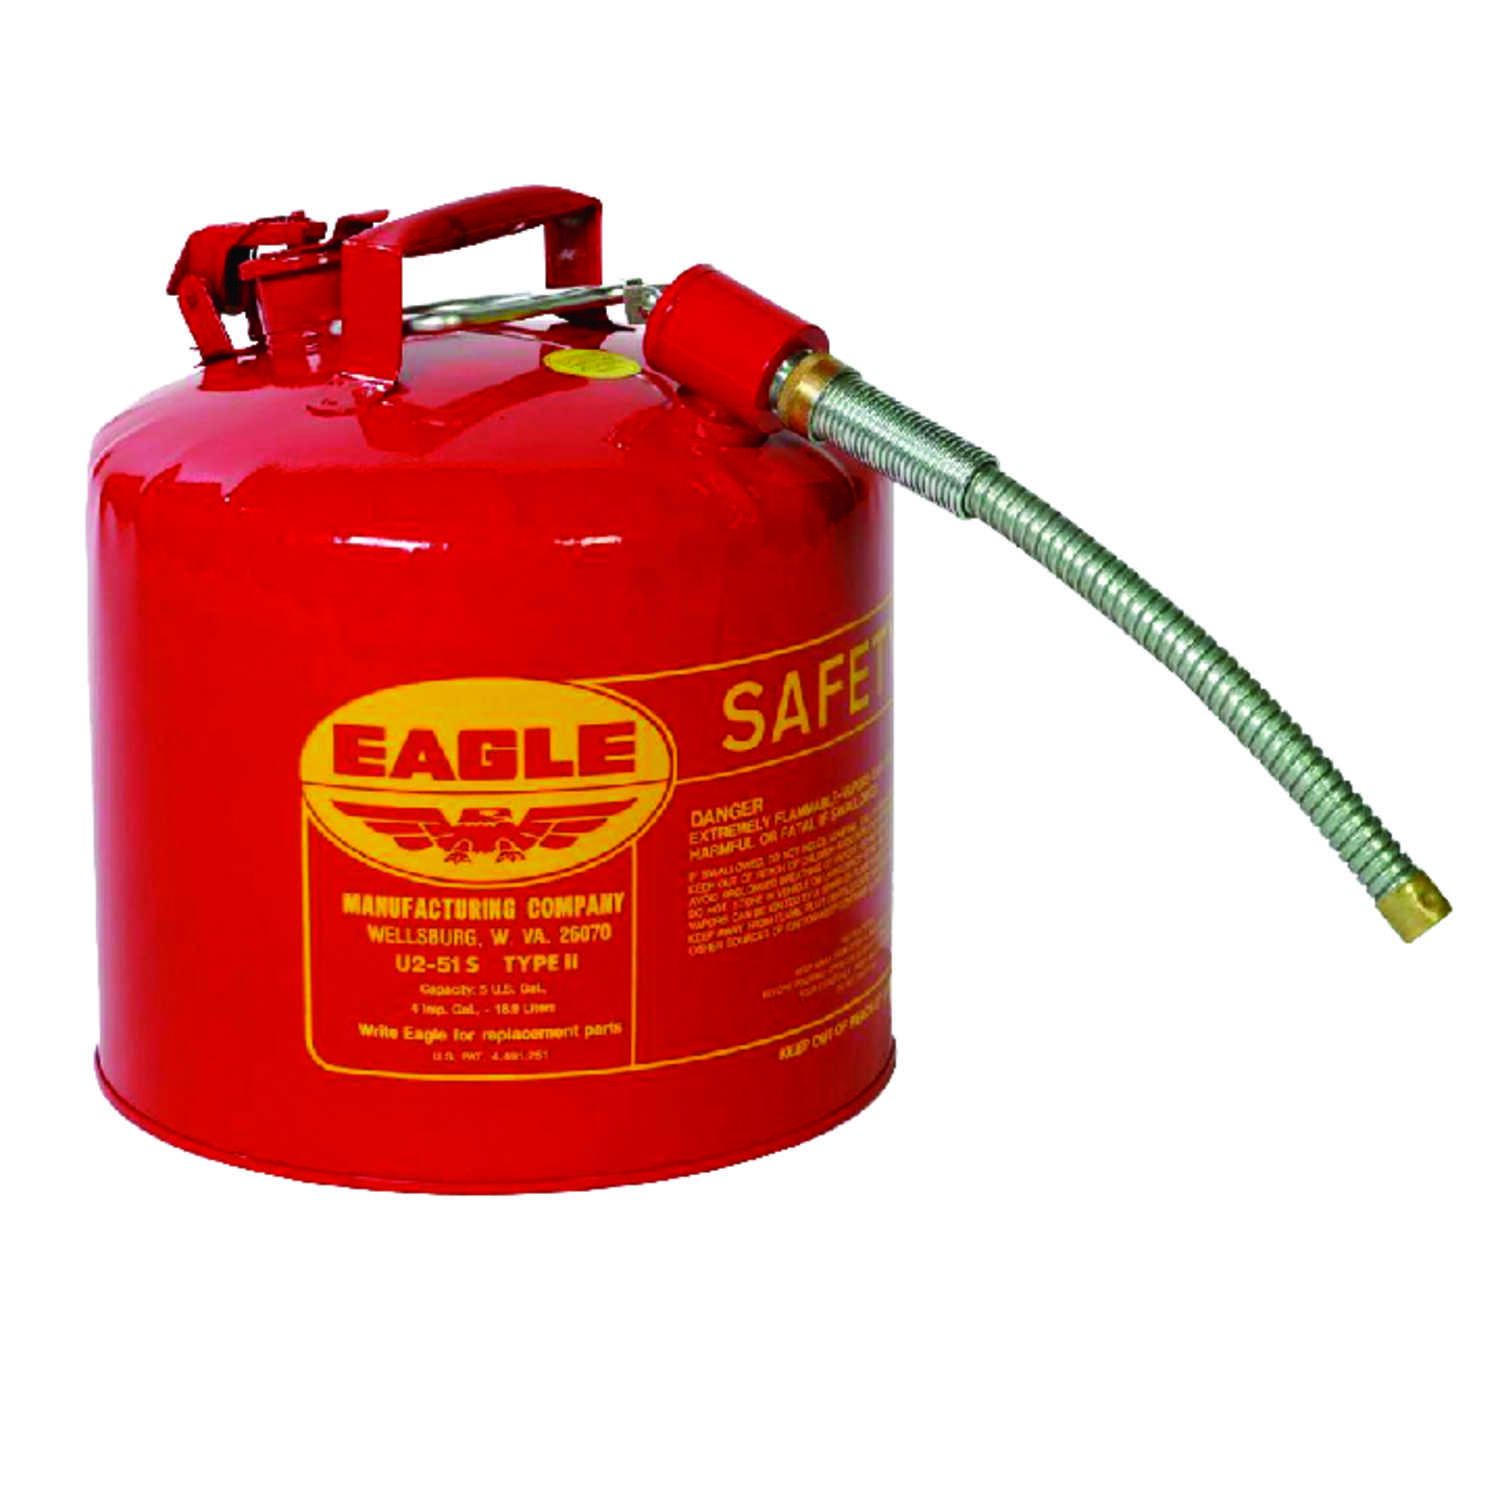 Eagle  Steel  Safety Gas Can  5 gal.